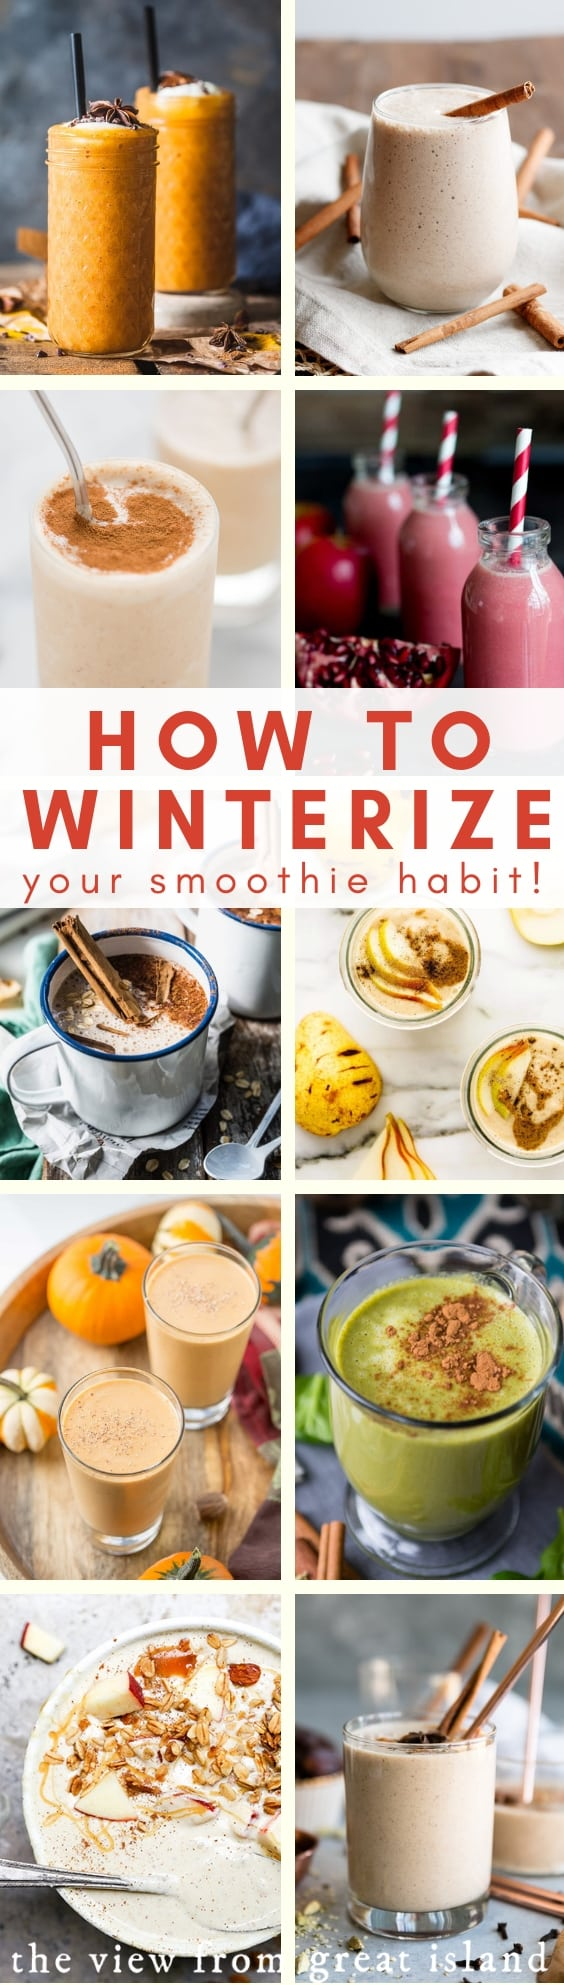 Warm Maple Oat Nut Smoothie (& How To Winterize Your Smoothie Habit) ~ get your favorite breakfast ready for fall and winter with these warm and cozy smoothie recipes ~ #healthy #bowl #pumpkin #chai #yogurt #oatmeal #Vegan #fig #persimmon #pomegranate #apple #maple #beverage #superfood #recipe